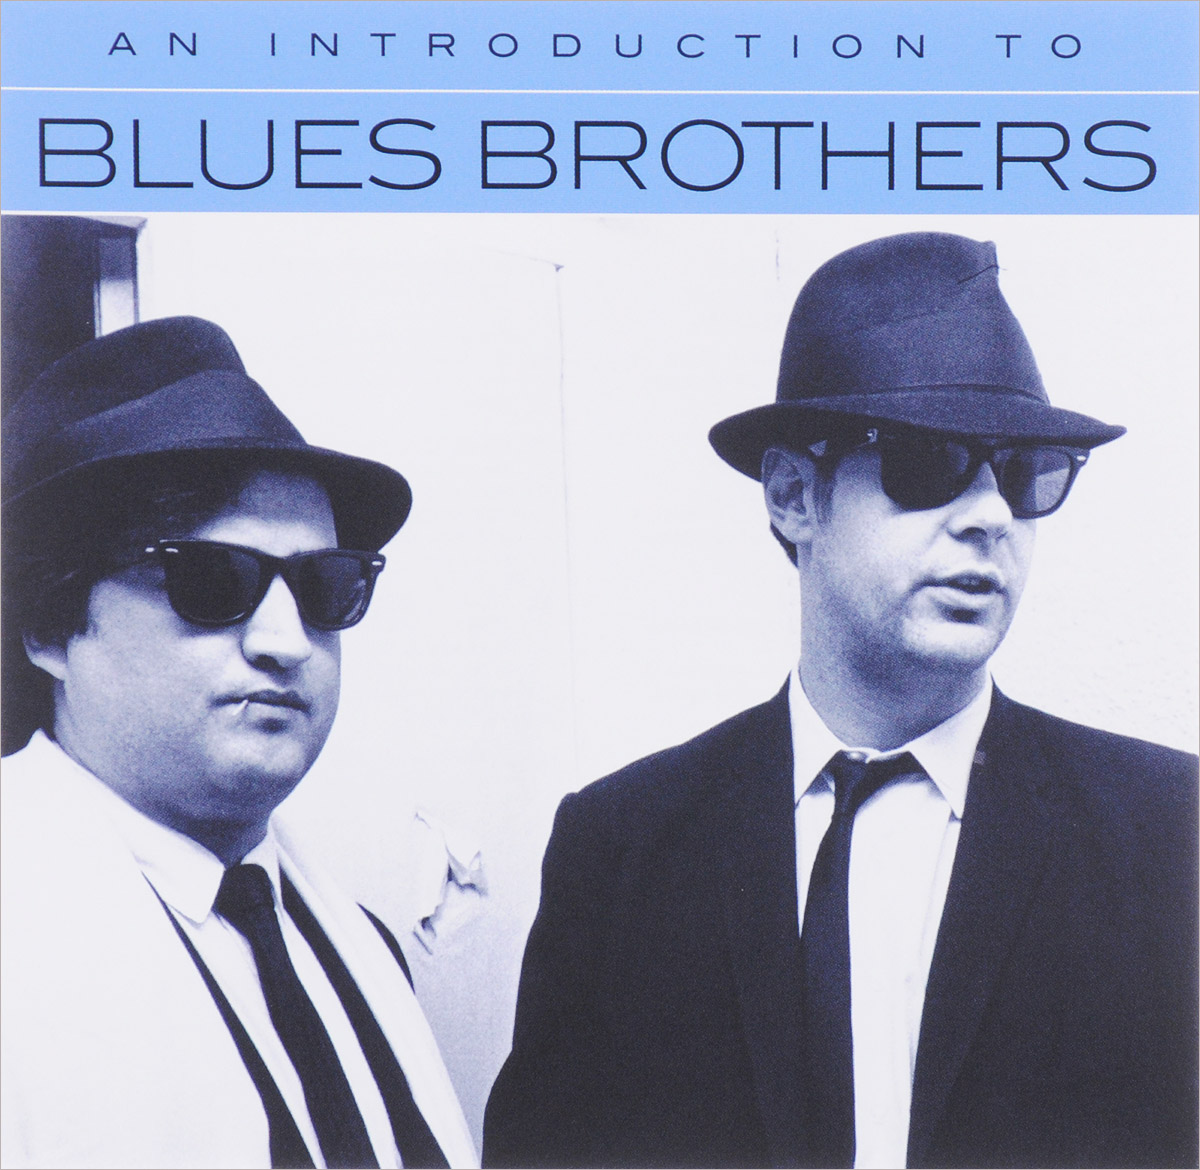 The Blues Brothers Band The Blues Brothers. An Introduction To Blues Brothers гэри мур the midnight blues band gary moore